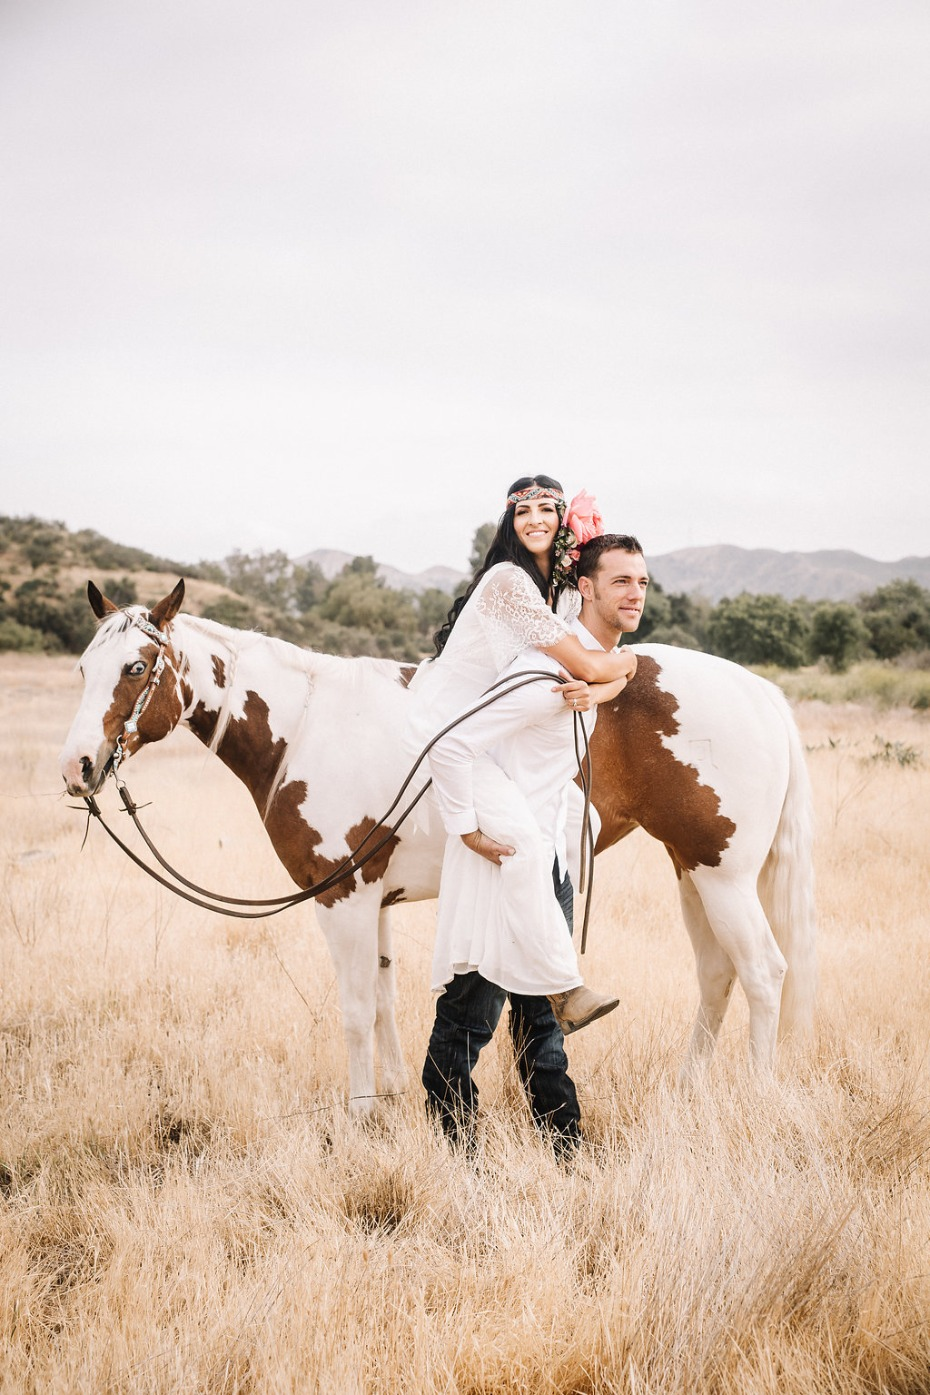 Southwestern wedding inspiration